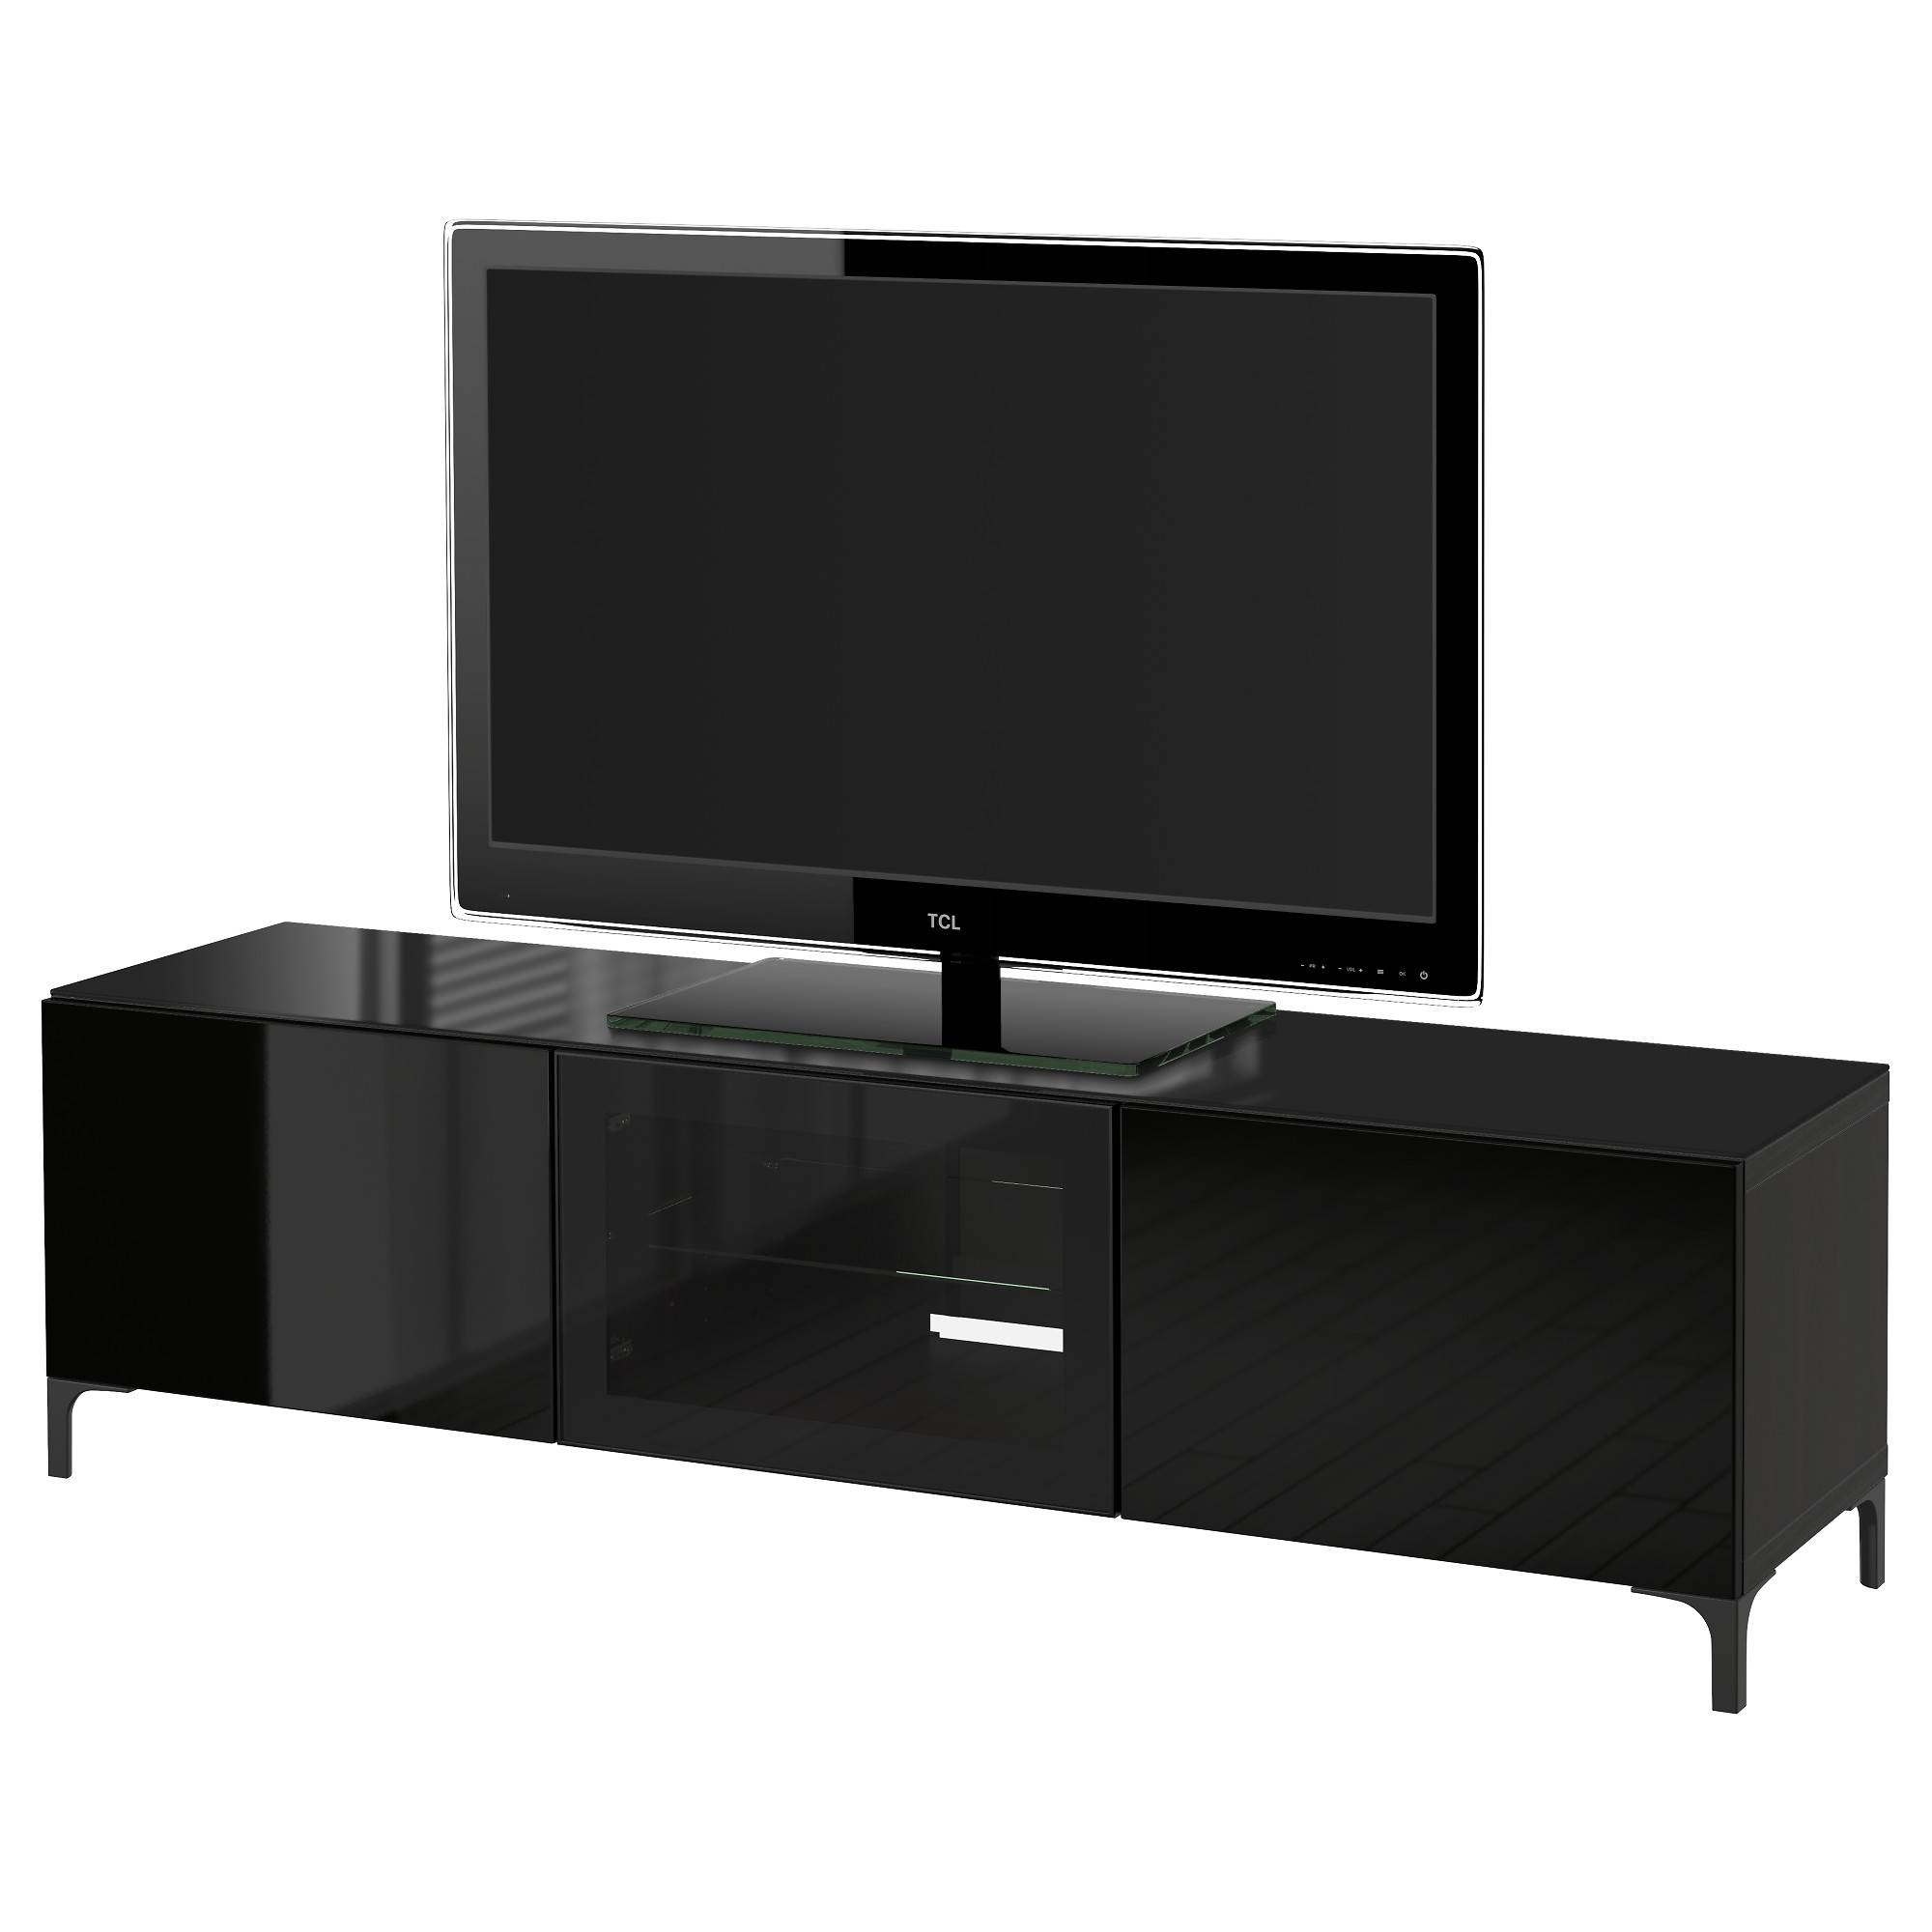 Tv Stands & Entertainment Centers - Ikea with regard to Glass Tv Cabinets With Doors (Image 15 of 15)